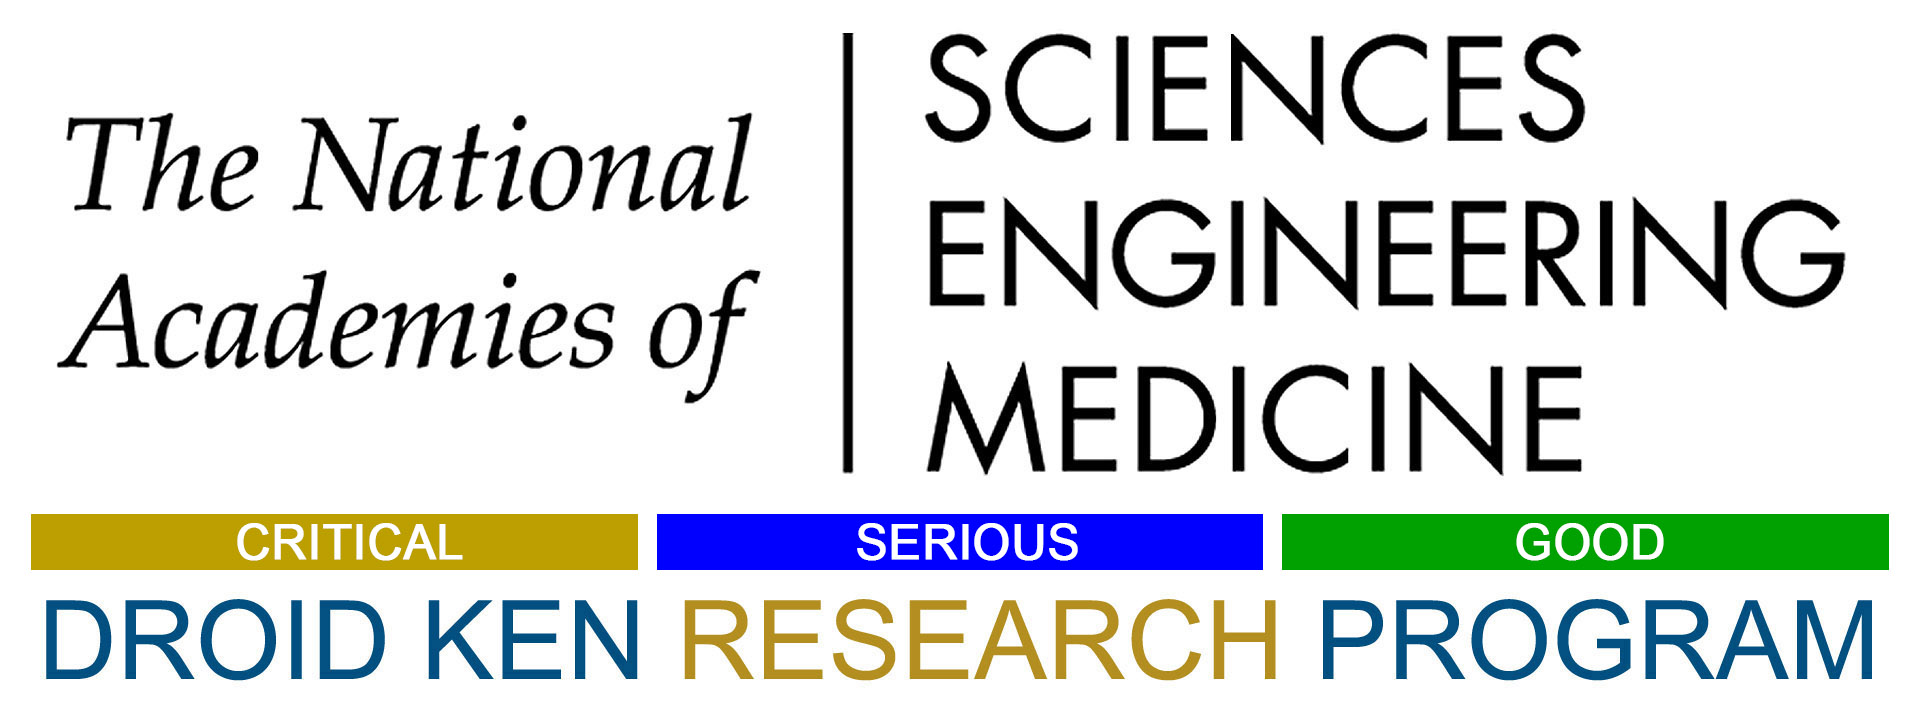 National Academies of Sciences Engineering and Medicine DROID KEN RESEARCH PROGRAM